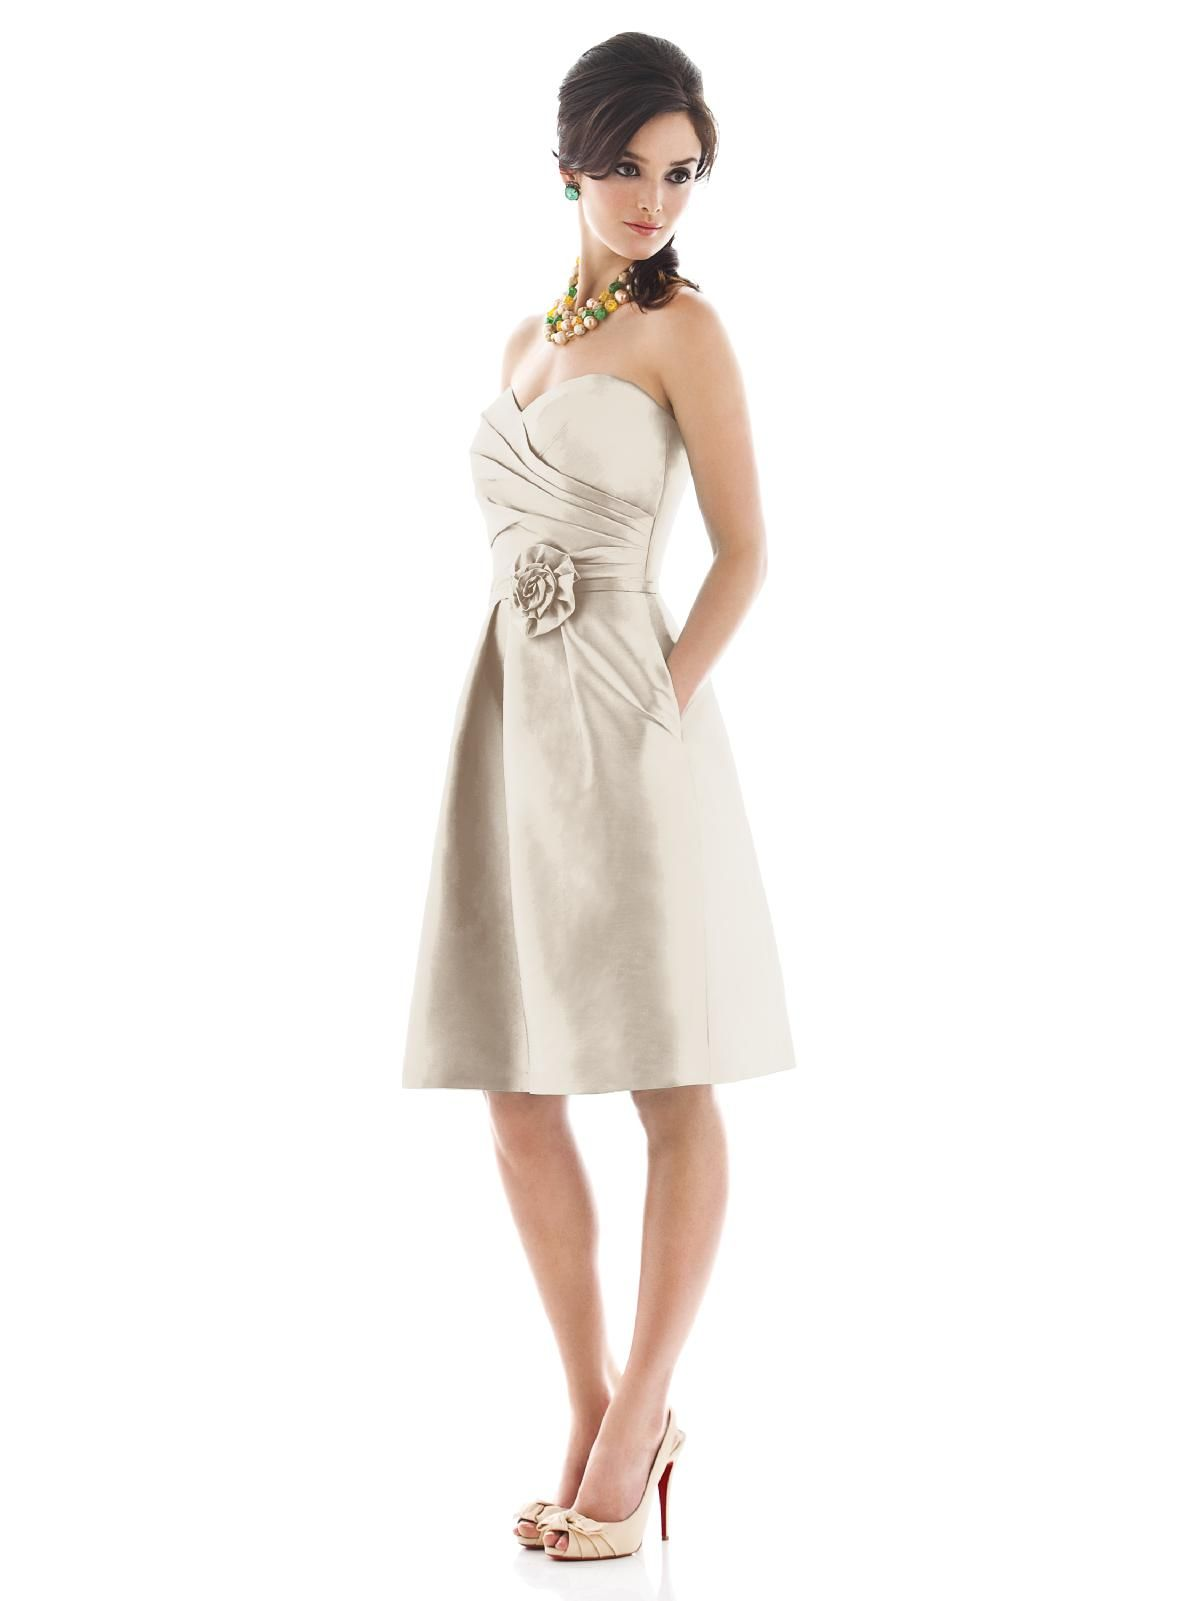 Alfred sung d496 without the sash fairy tale pinterest the alfred sung bridesmaid collection offers fresh contemporary bridesmaid dresses while keeping your budget in mind ombrellifo Choice Image